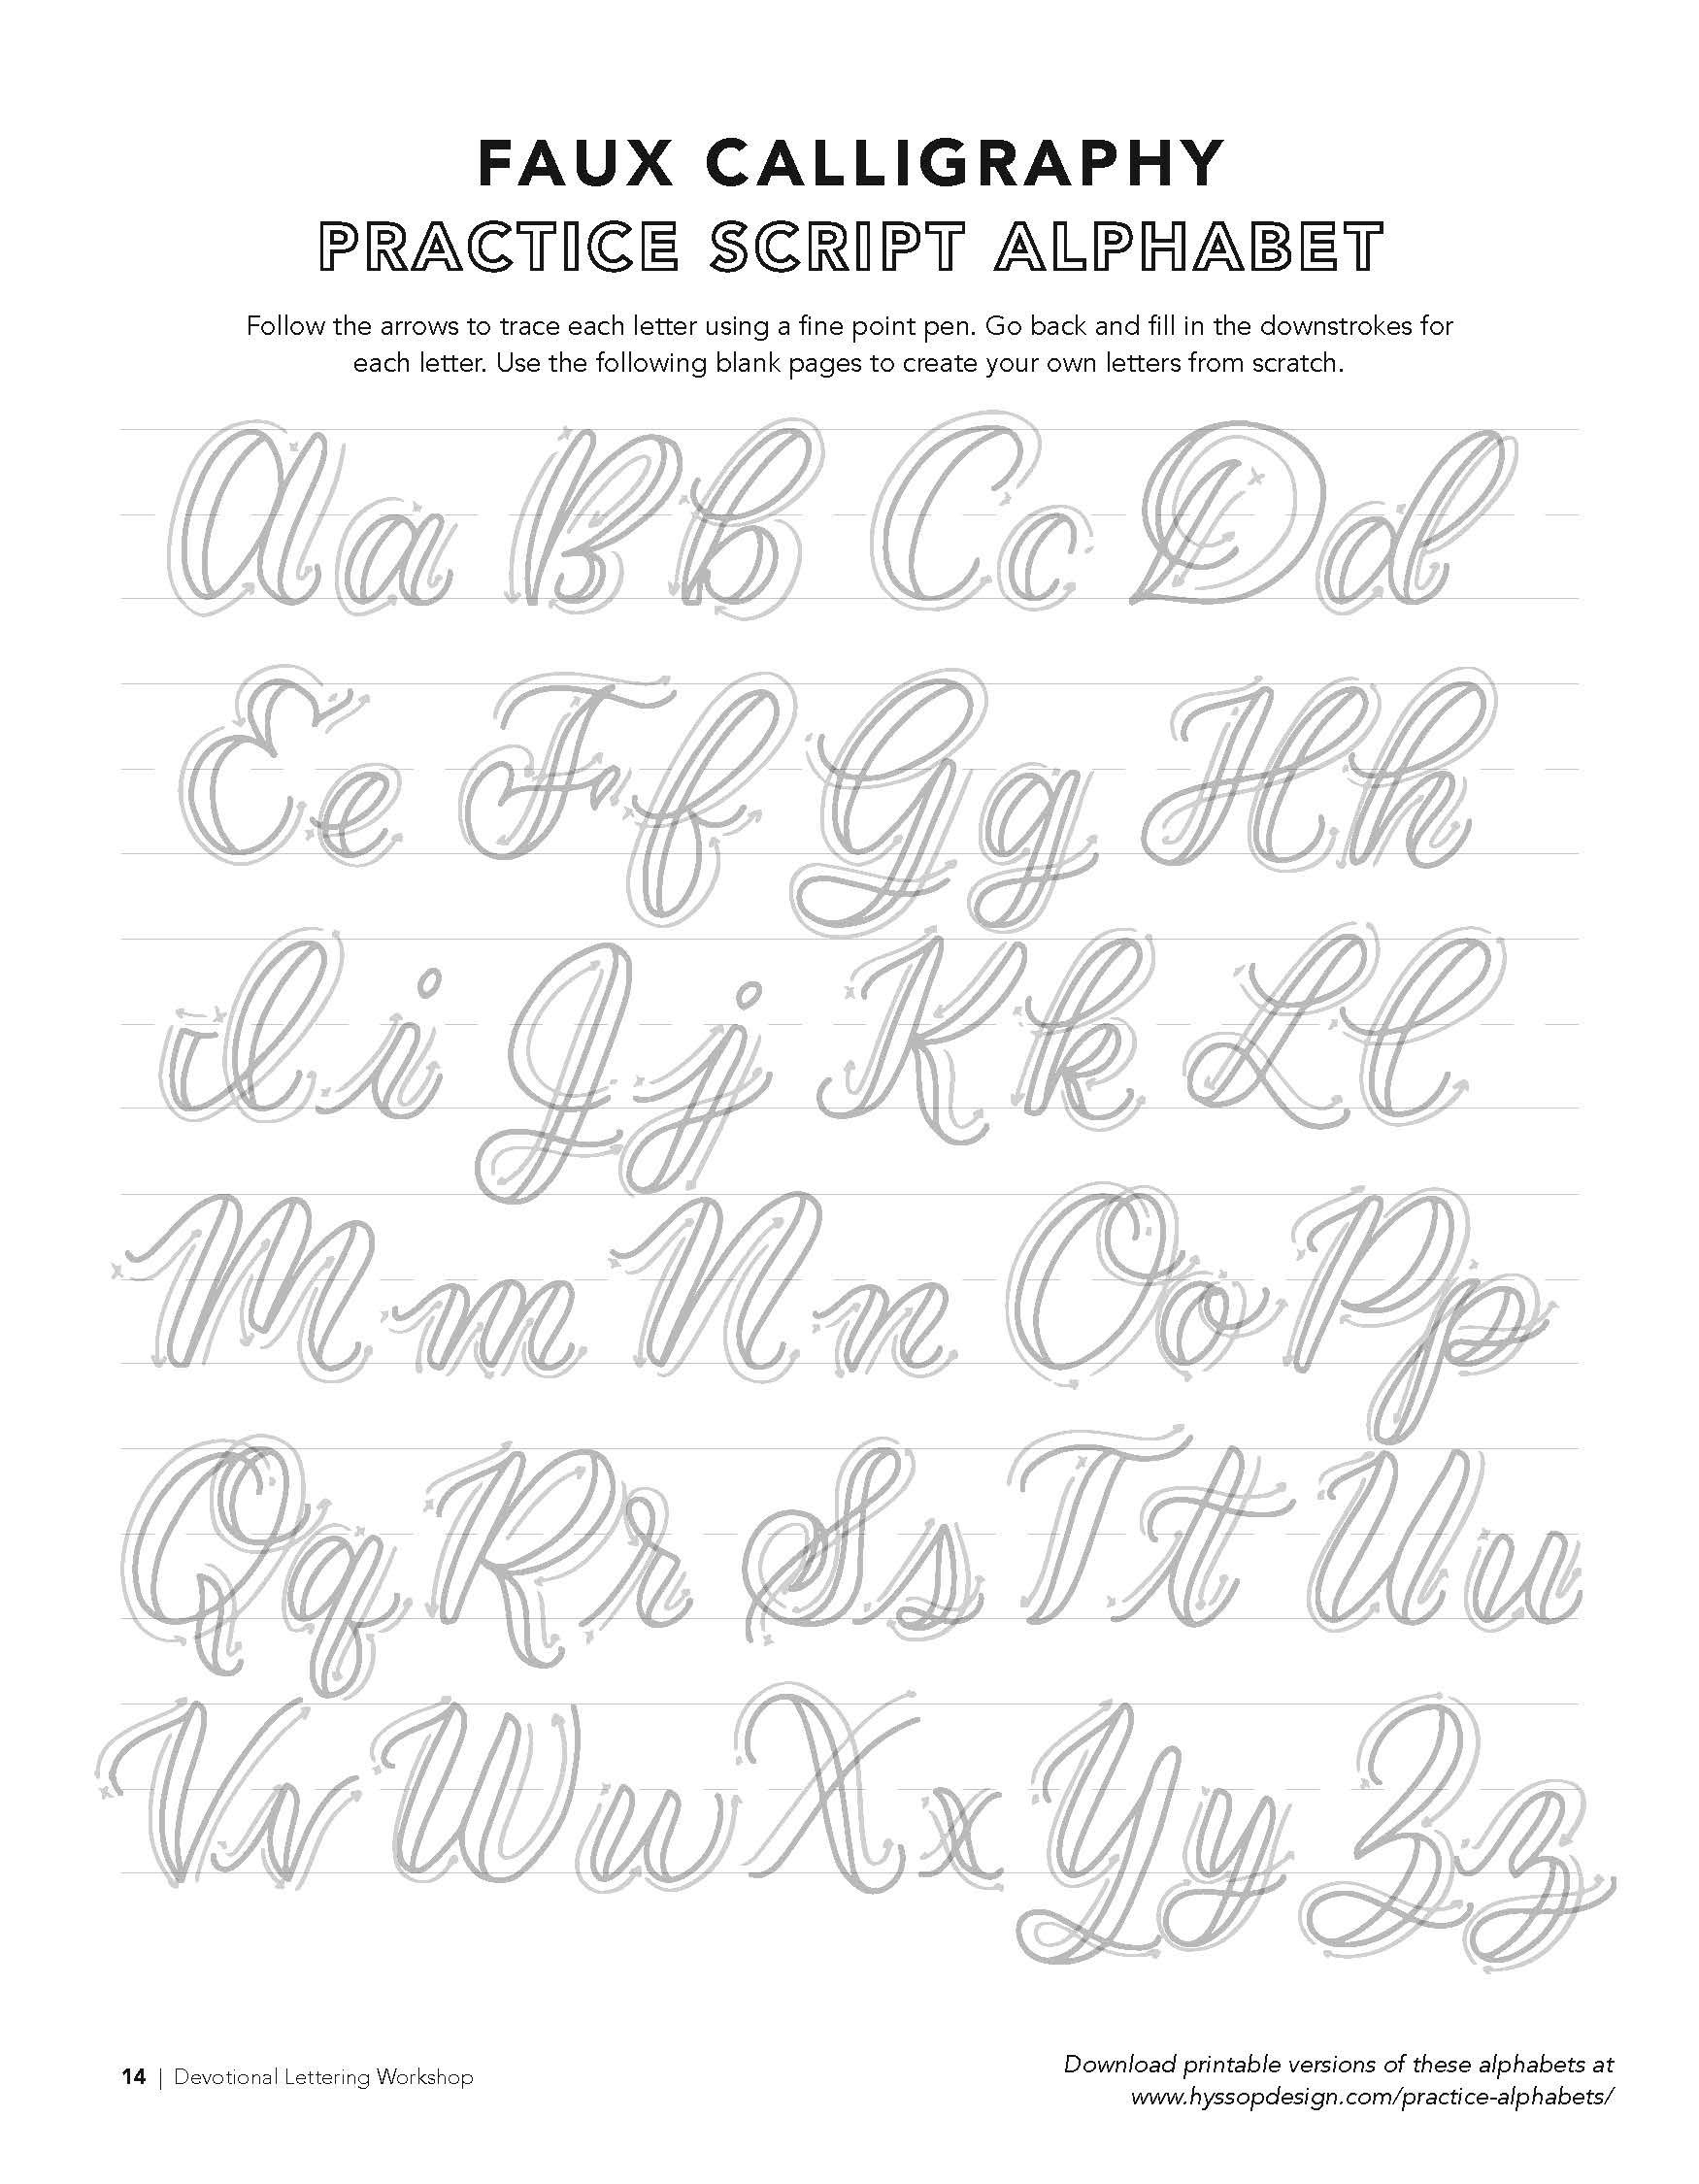 Free Calligraphy Alphabets | Calligraphy Alphabet, Faux regarding Tracing Letters Font Free